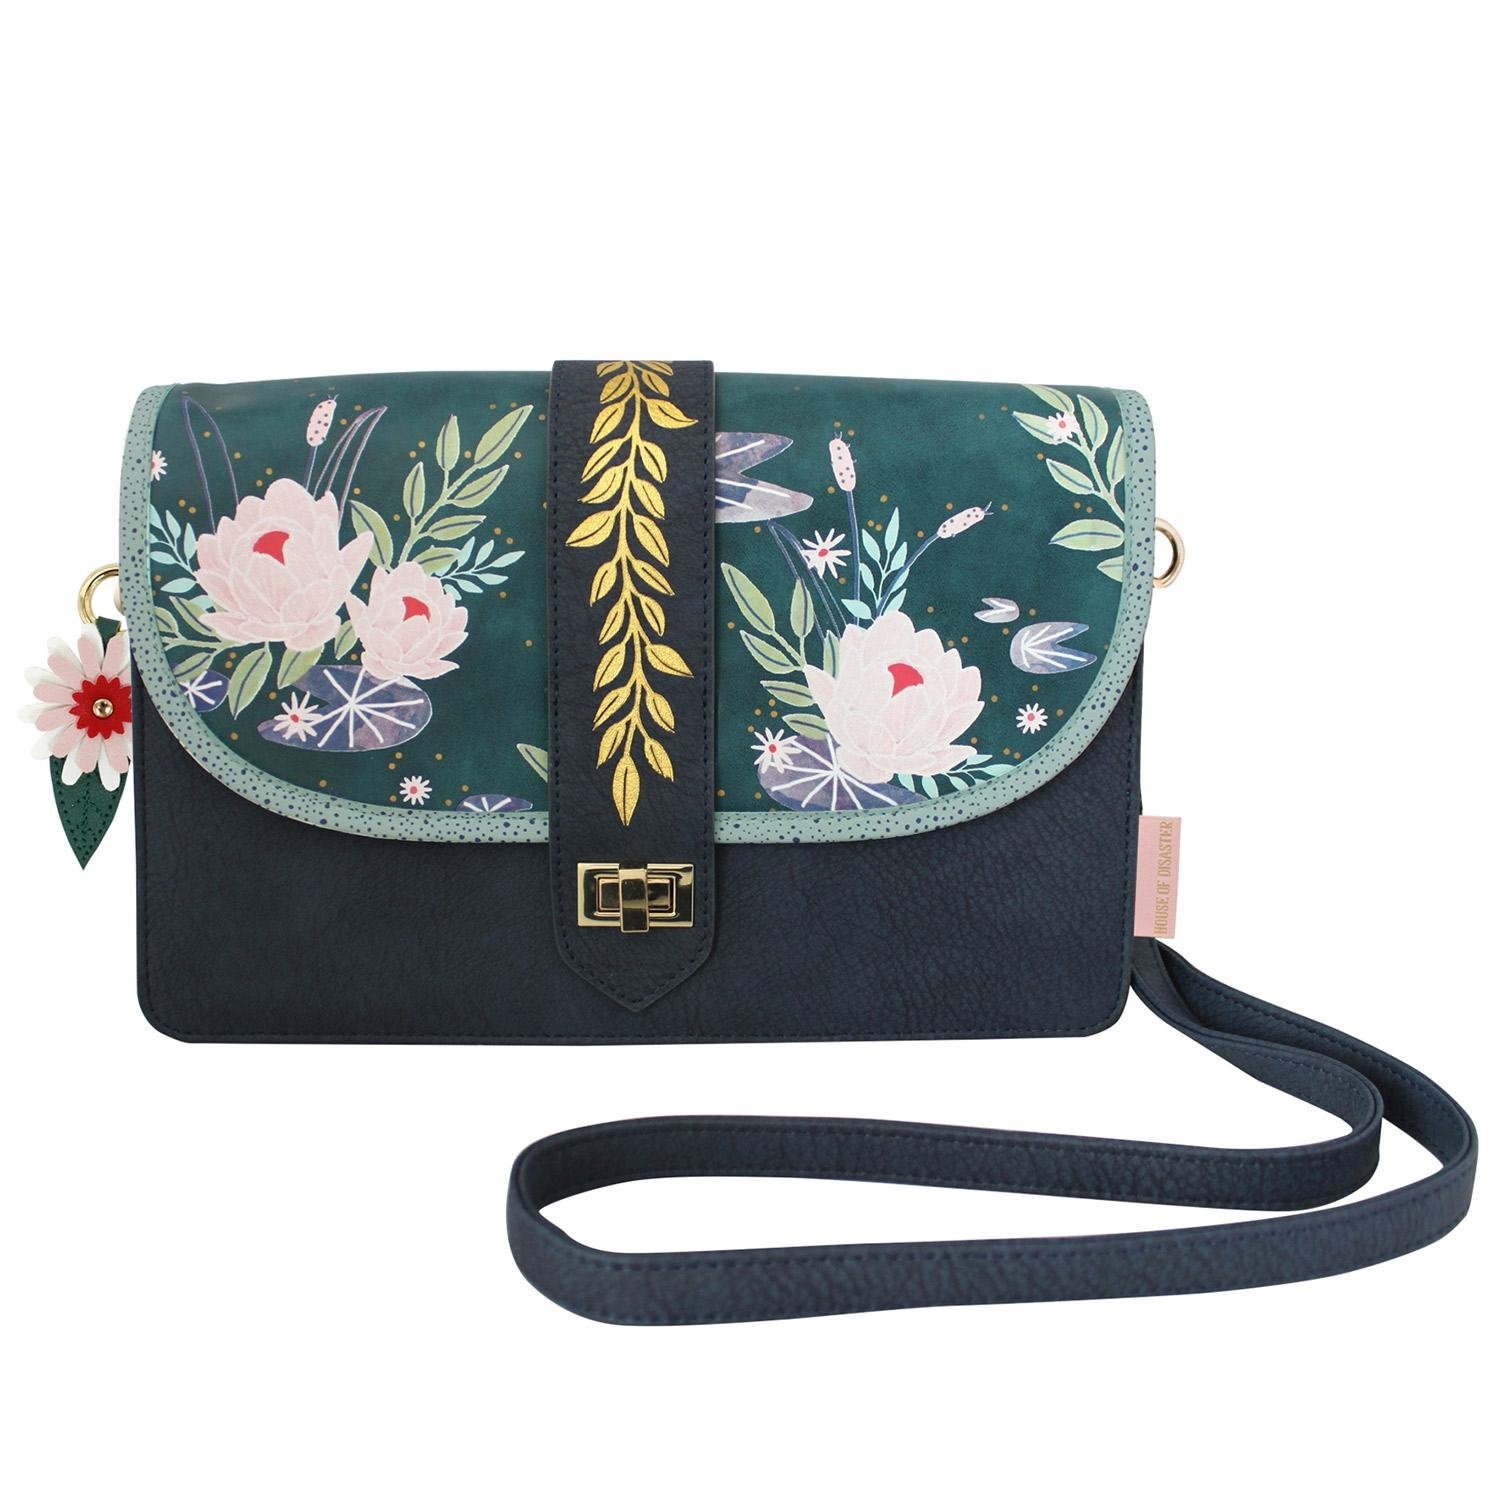 Disaster Designs Secret Garden Swan Mini Bag Temptation Gifts